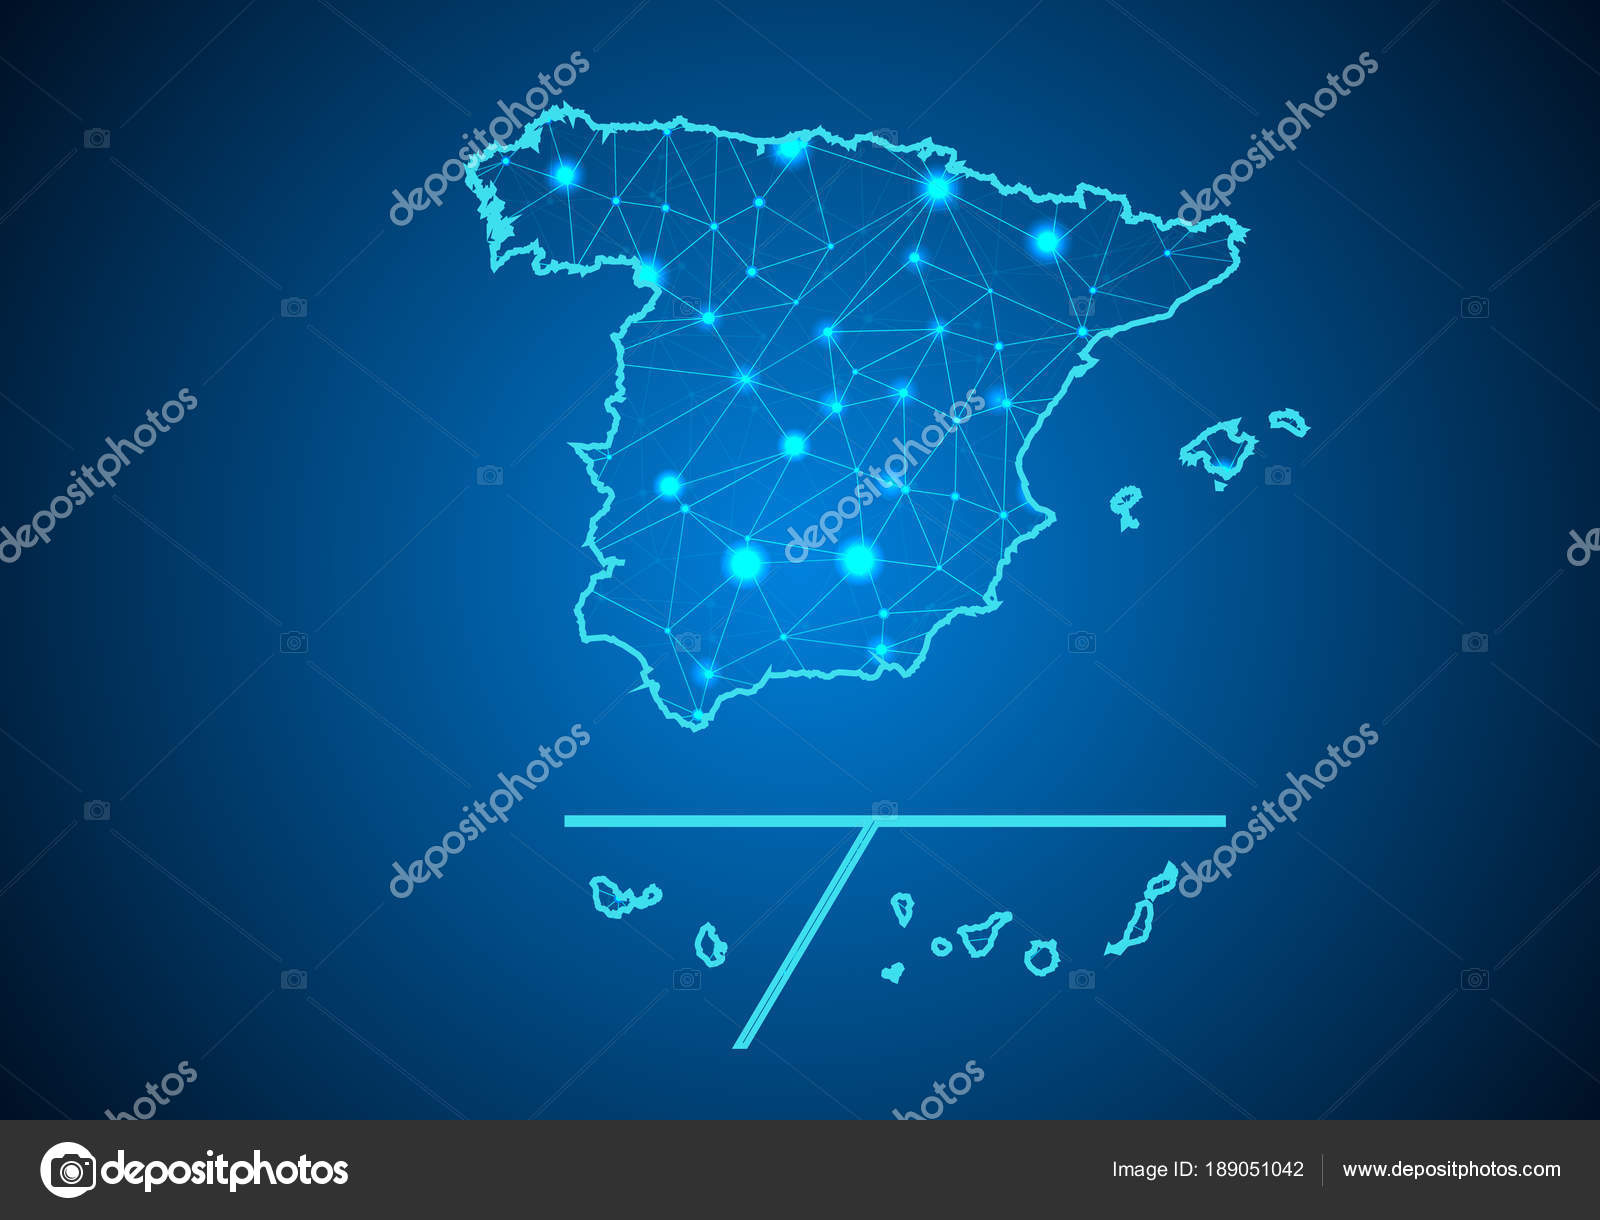 Abstract Mash Line Point Scales Dark Background Map Spain Provinces